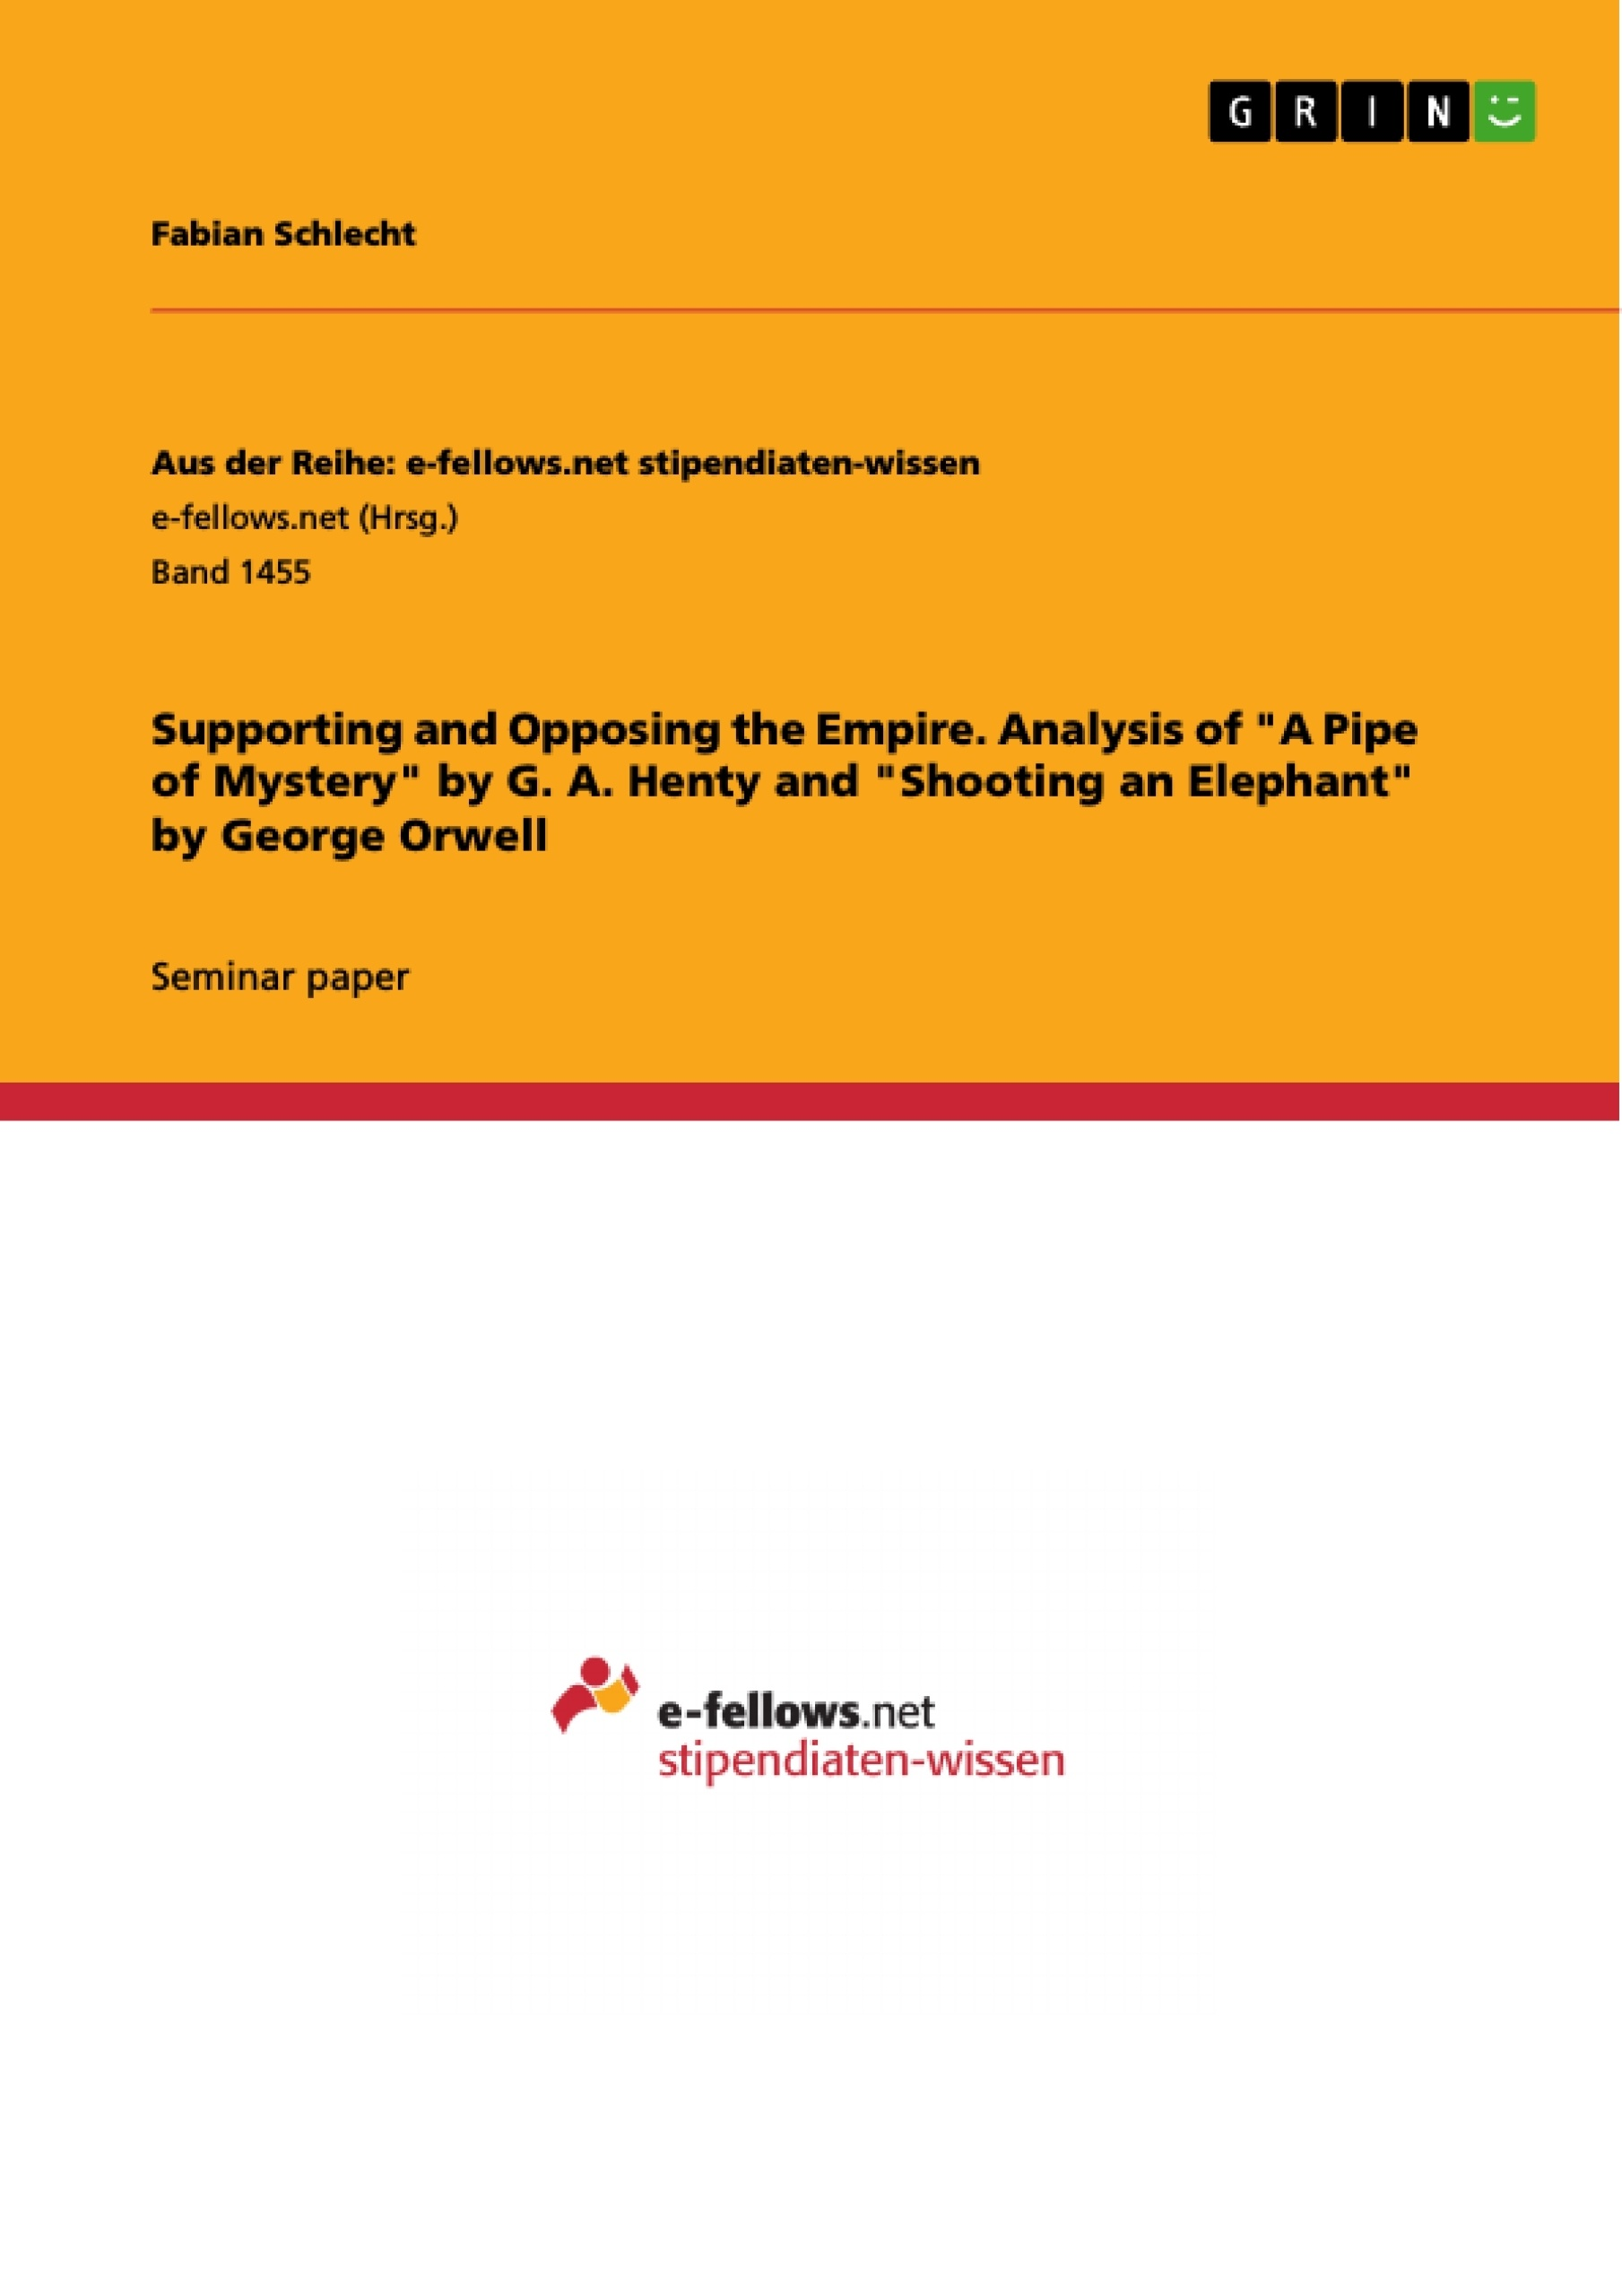 """Title: Supporting and Opposing the Empire. Analysis of """"A Pipe of Mystery"""" by G. A. Henty and """"Shooting an Elephant"""" by George Orwell"""